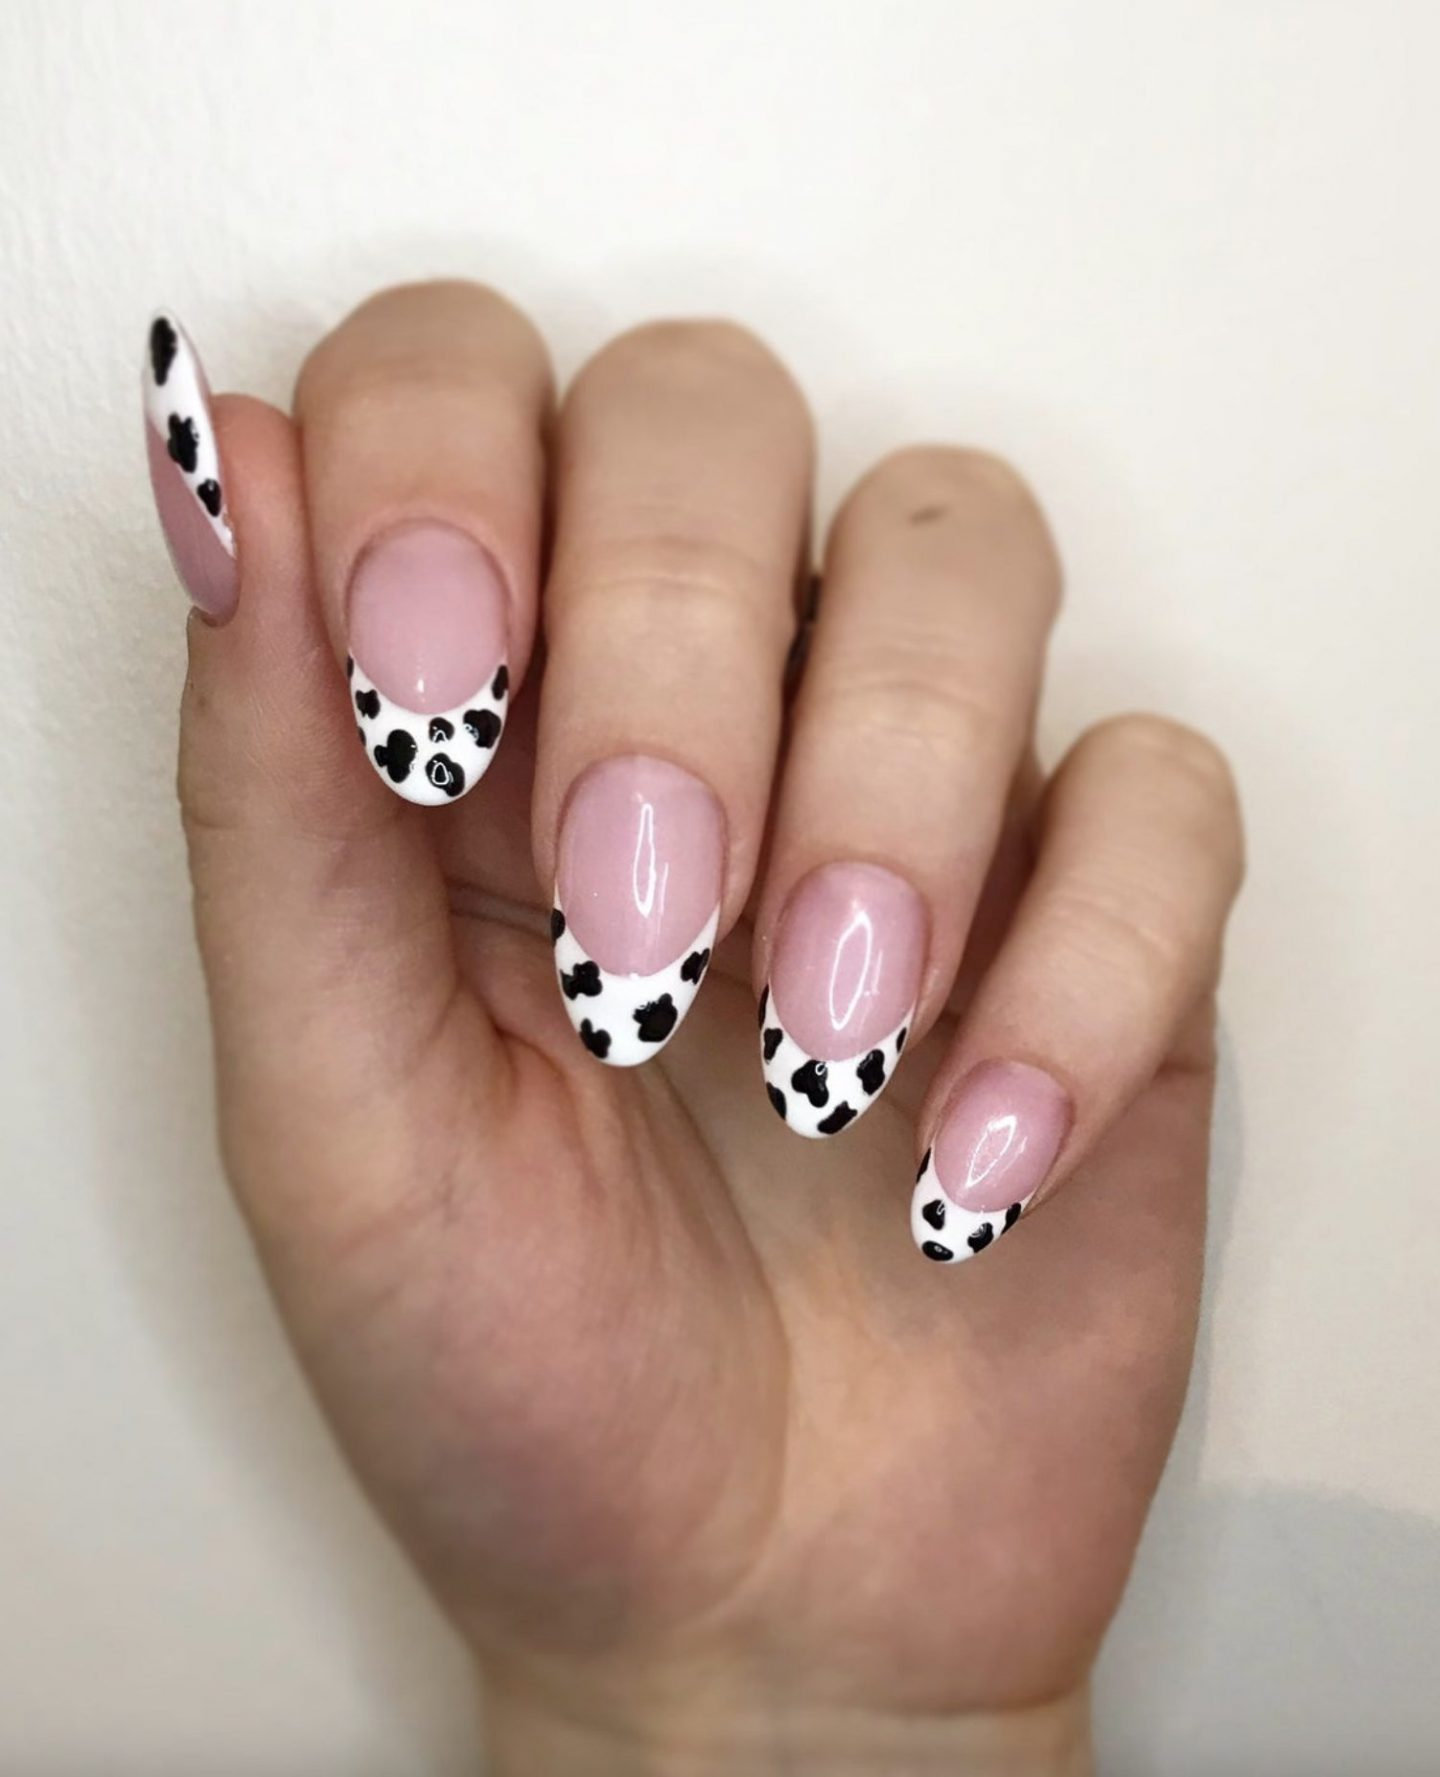 Cow print French tip nails with pink polish